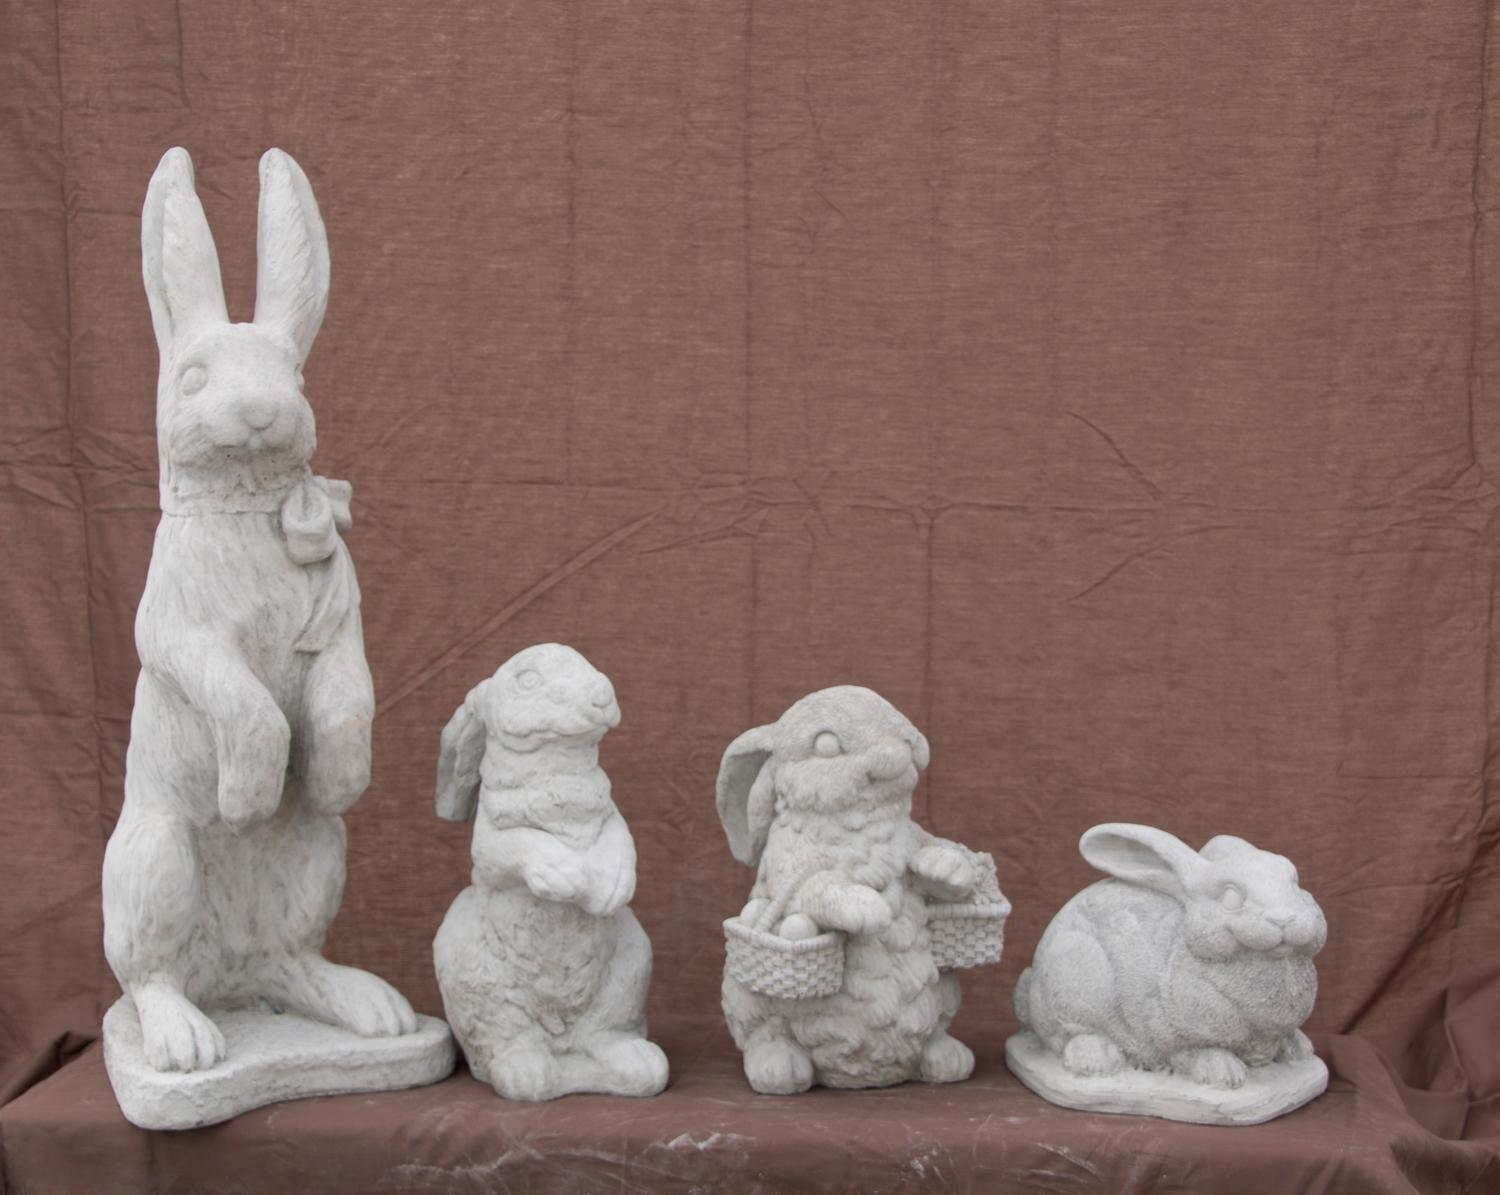 Thumper Rabbit - Rabbit Standing Ears Back, Bunny with Basket, Detailed Medium Rabbit